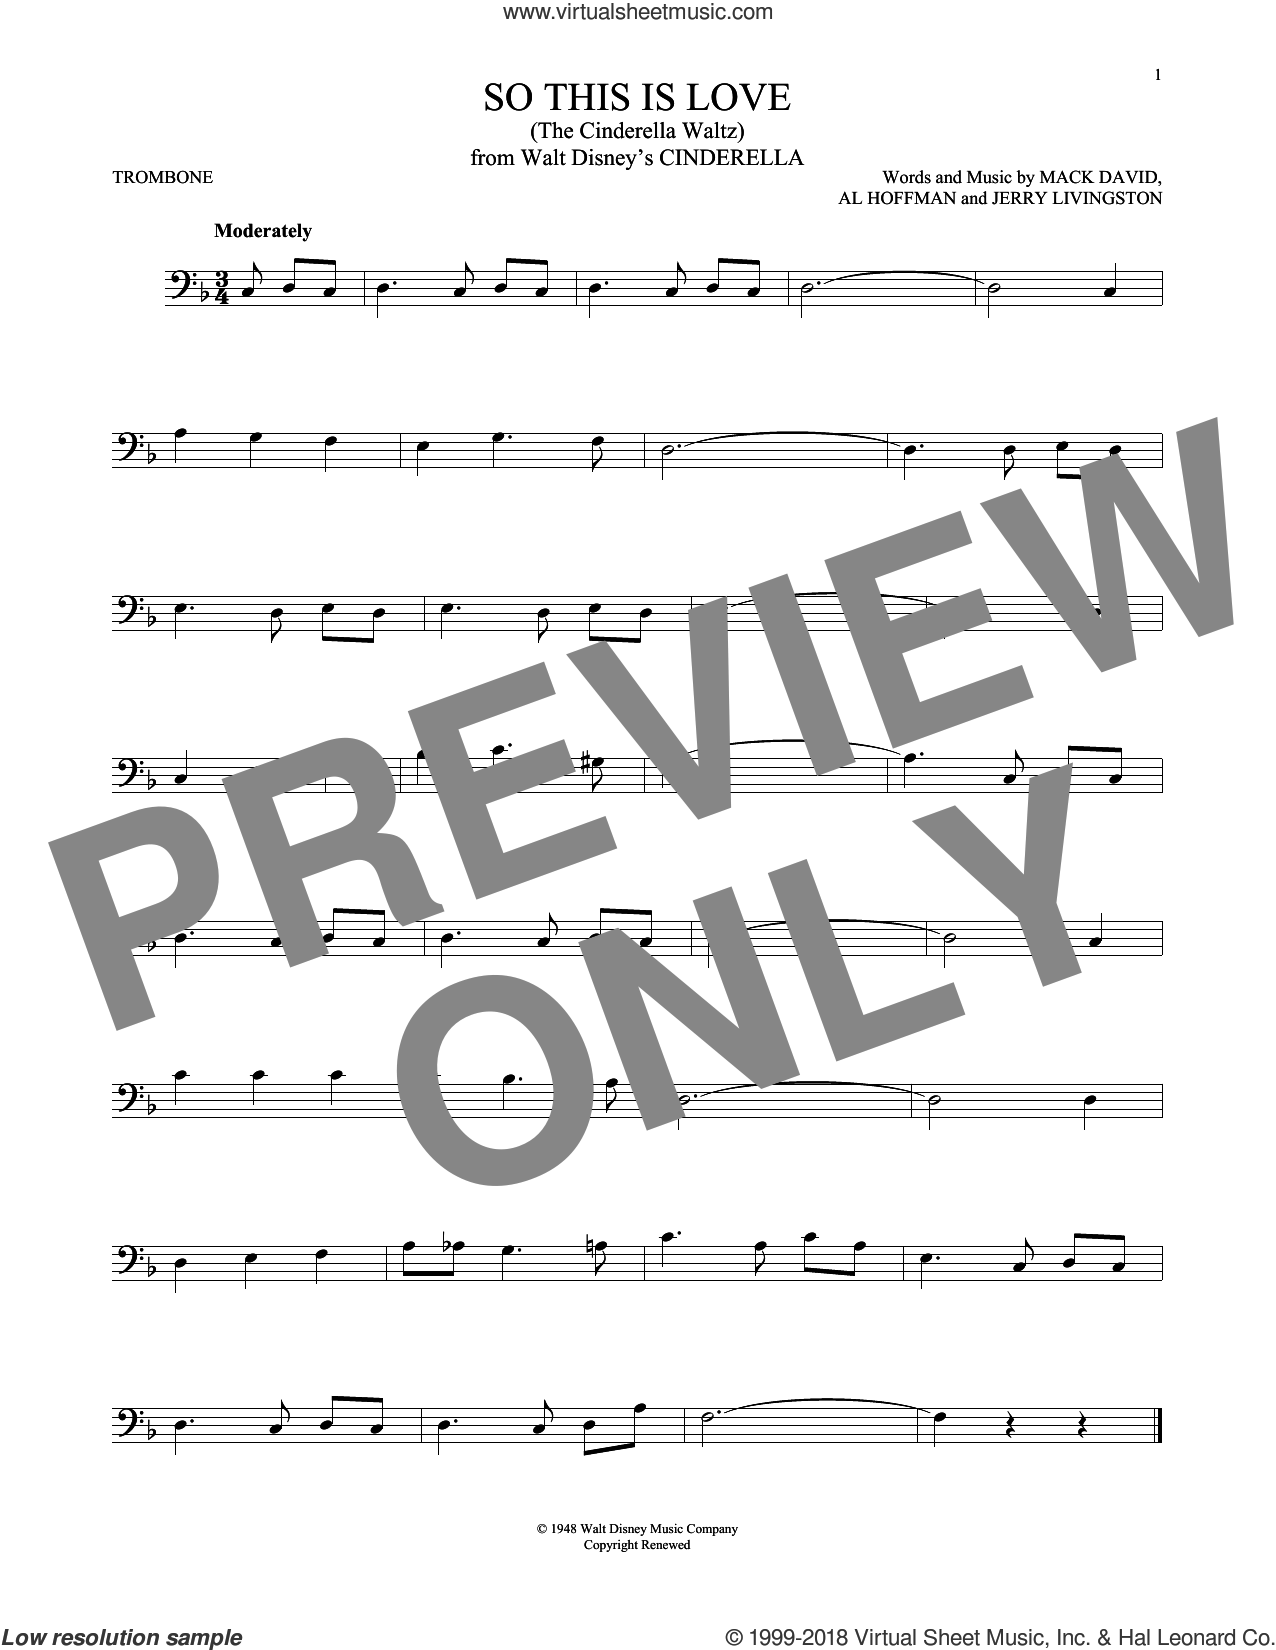 So This Is Love sheet music for trombone solo by Al Hoffman, James Ingram, Jerry Livingston, Mack David and Mack David, Al Hoffman and Jerry Livingston, intermediate